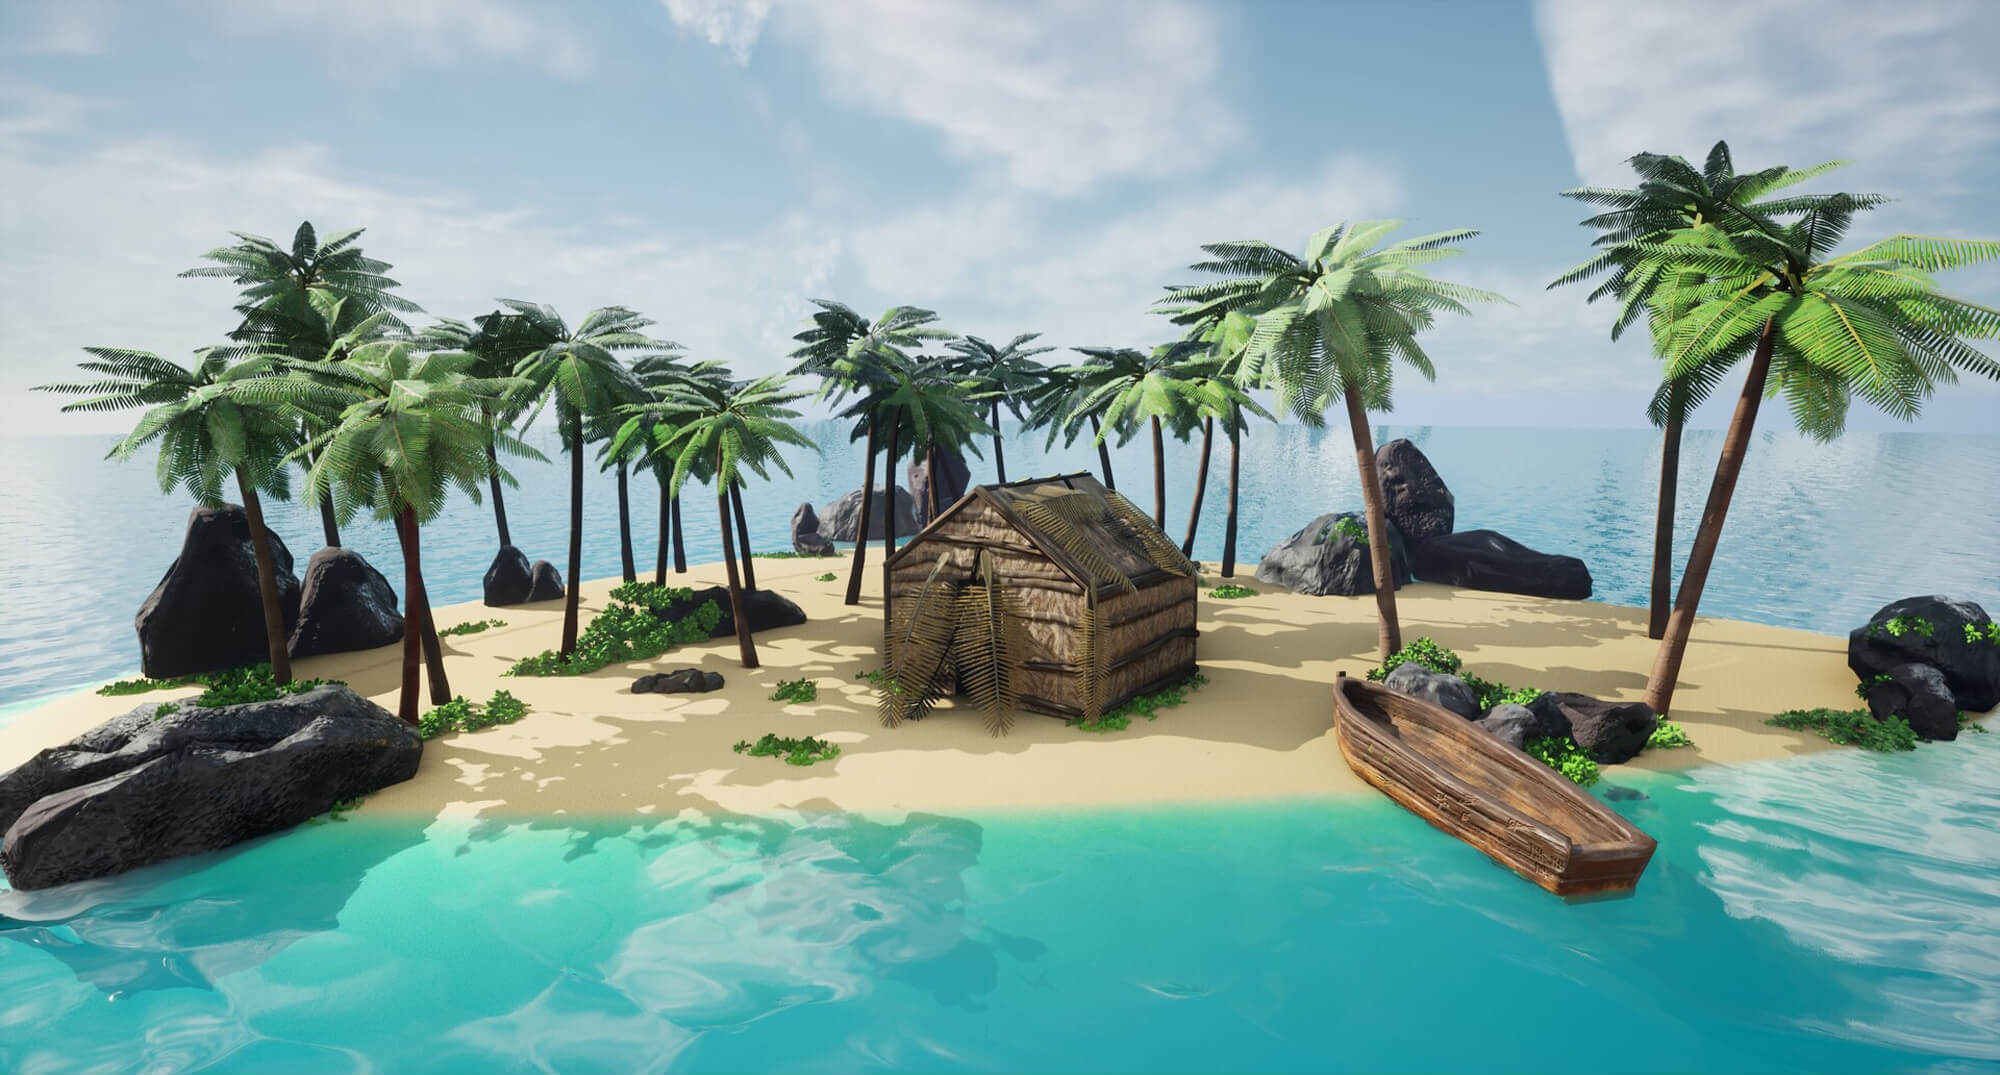 a tiny tropical island with palm trees, rocks and a wooden hut on the beach